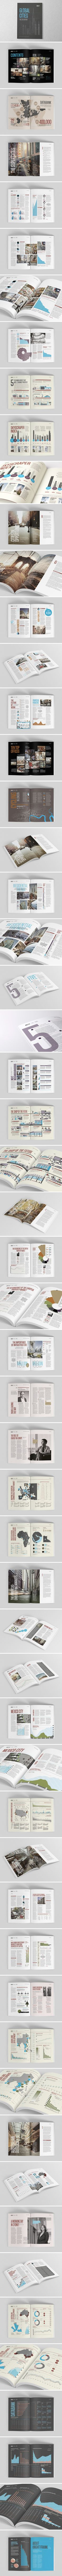 \\\ Knight Frank - Global Cities Report by The Design Surgery \\\ Editorial design magazine / revista / infografia / infographic. Booklet Design, Book Design Layout, Print Layout, Graphic Design Layouts, Brochure Design, Graphic Design Inspiration, Editorial Design, Editorial Layout, Magazin Design